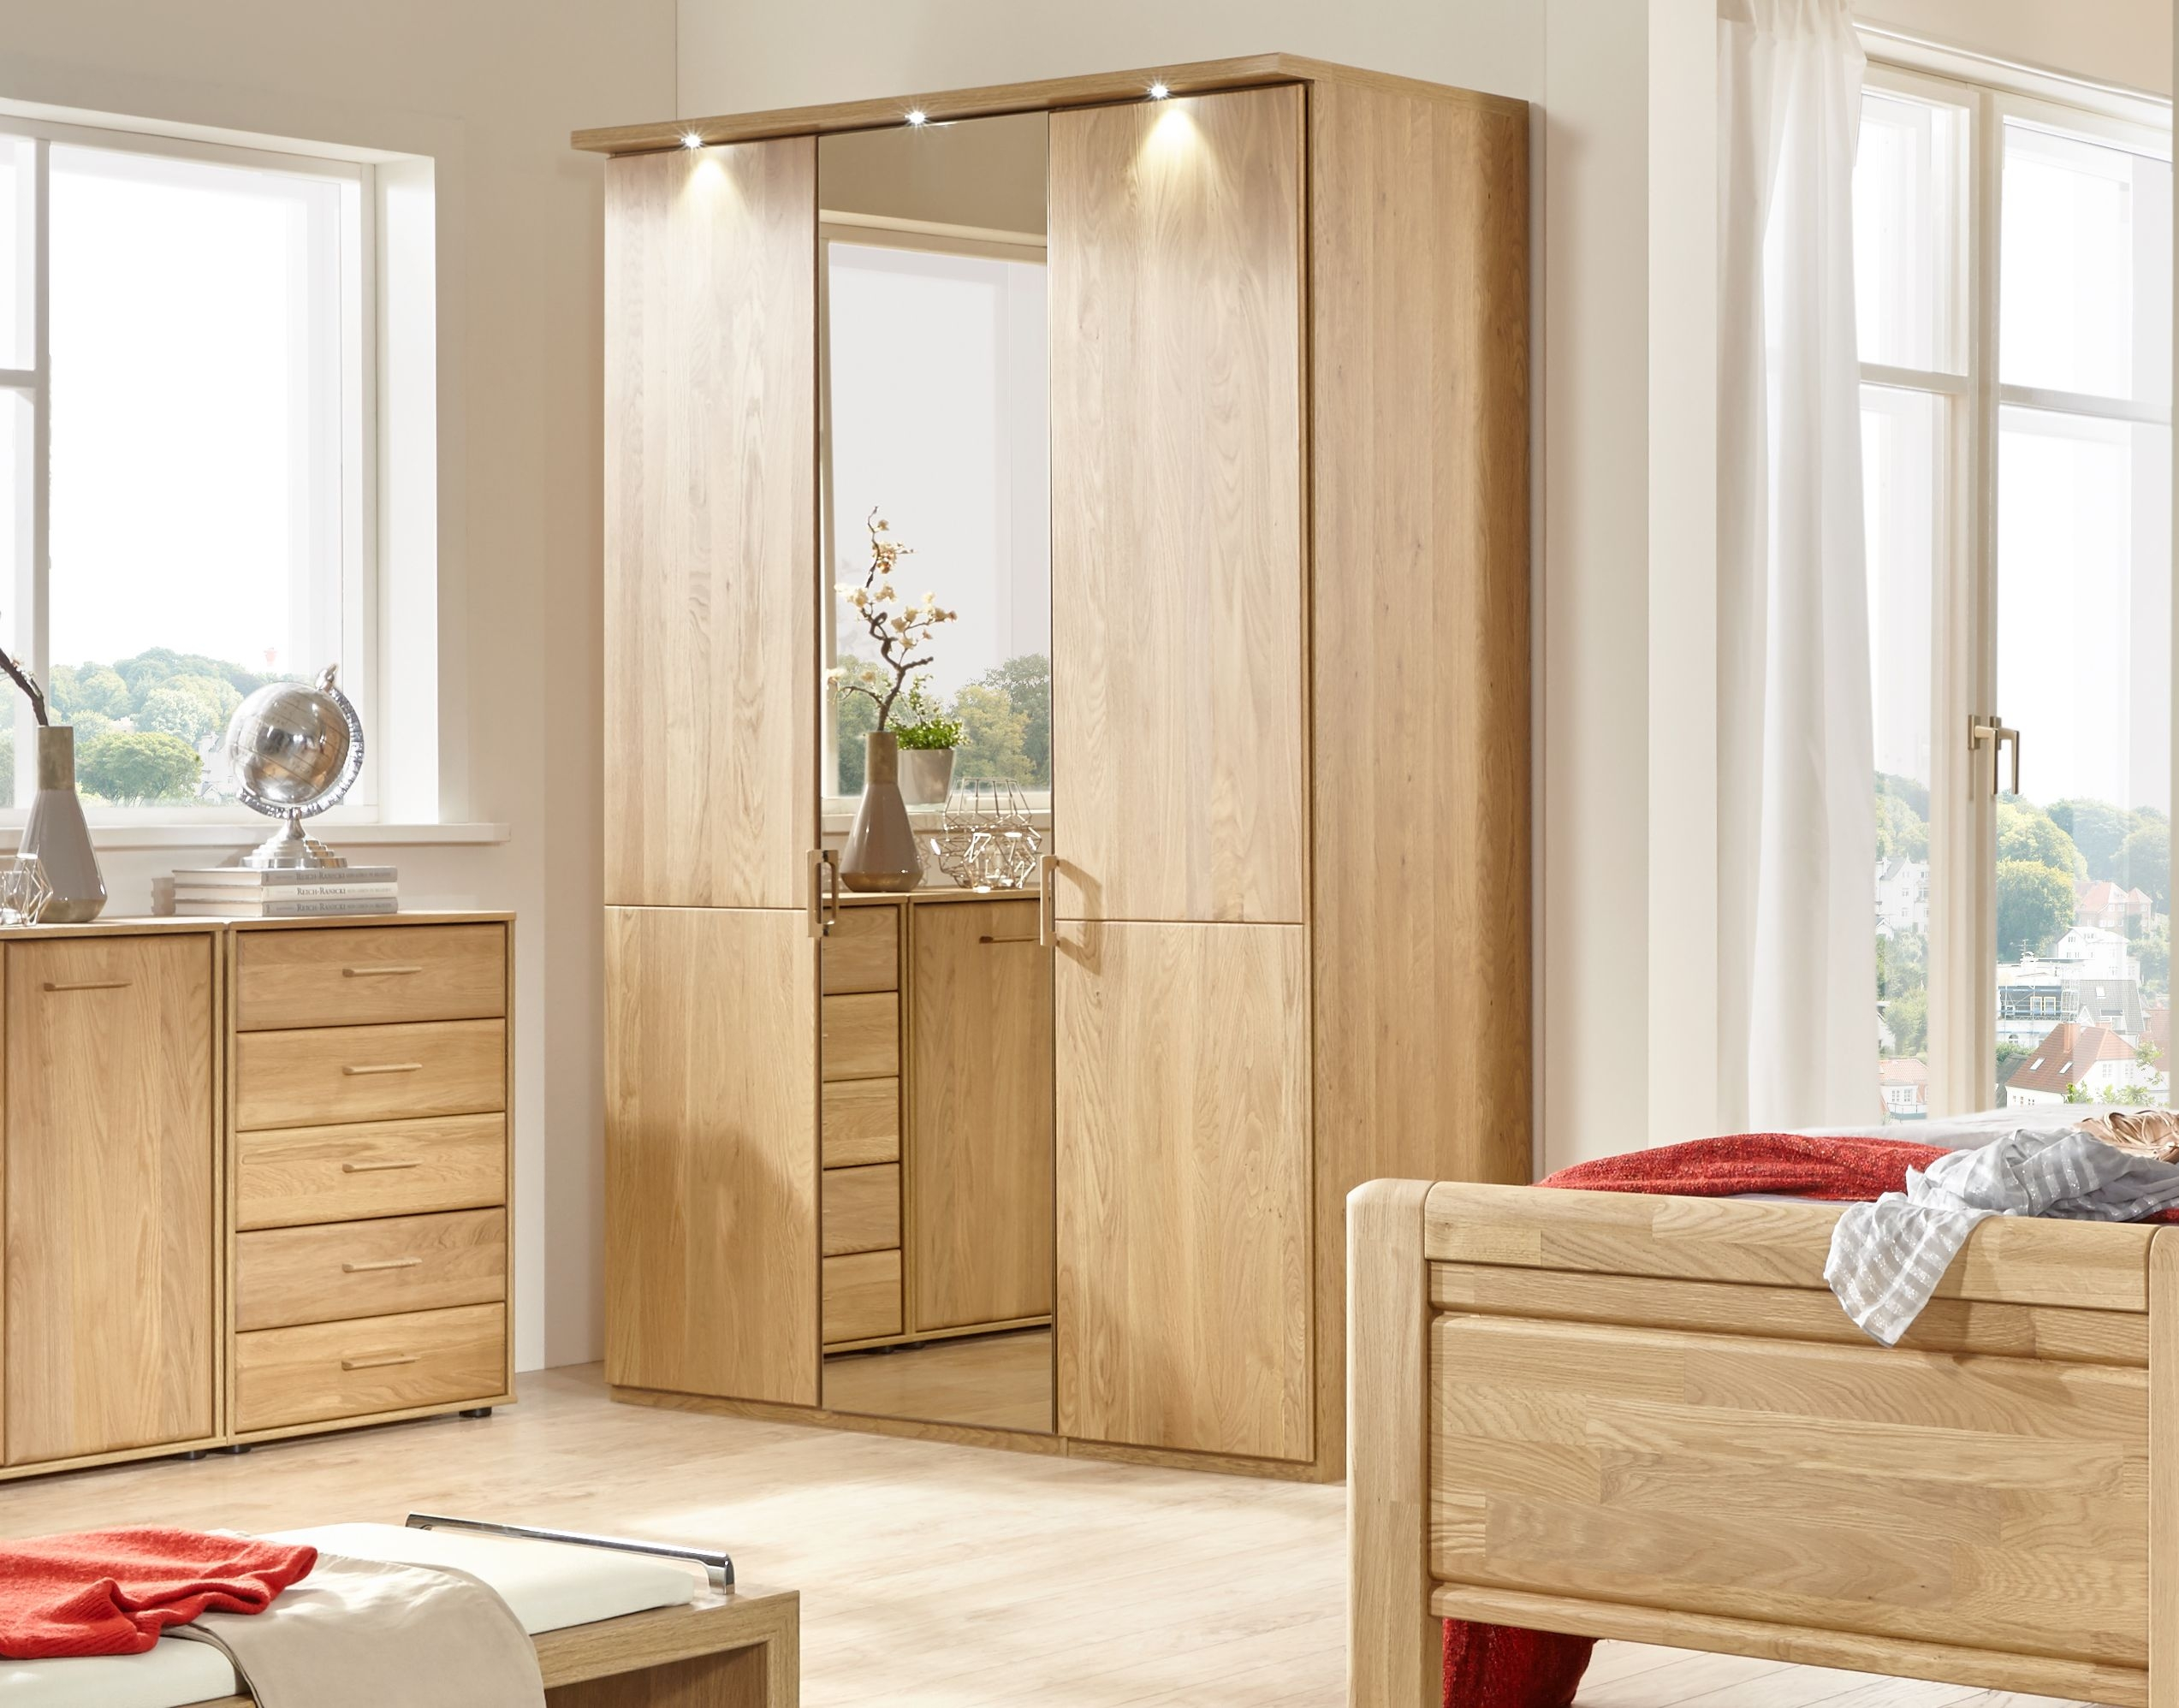 Wiemann Lido 1 Door Wardrobe in Oak - W 50cm (Left)